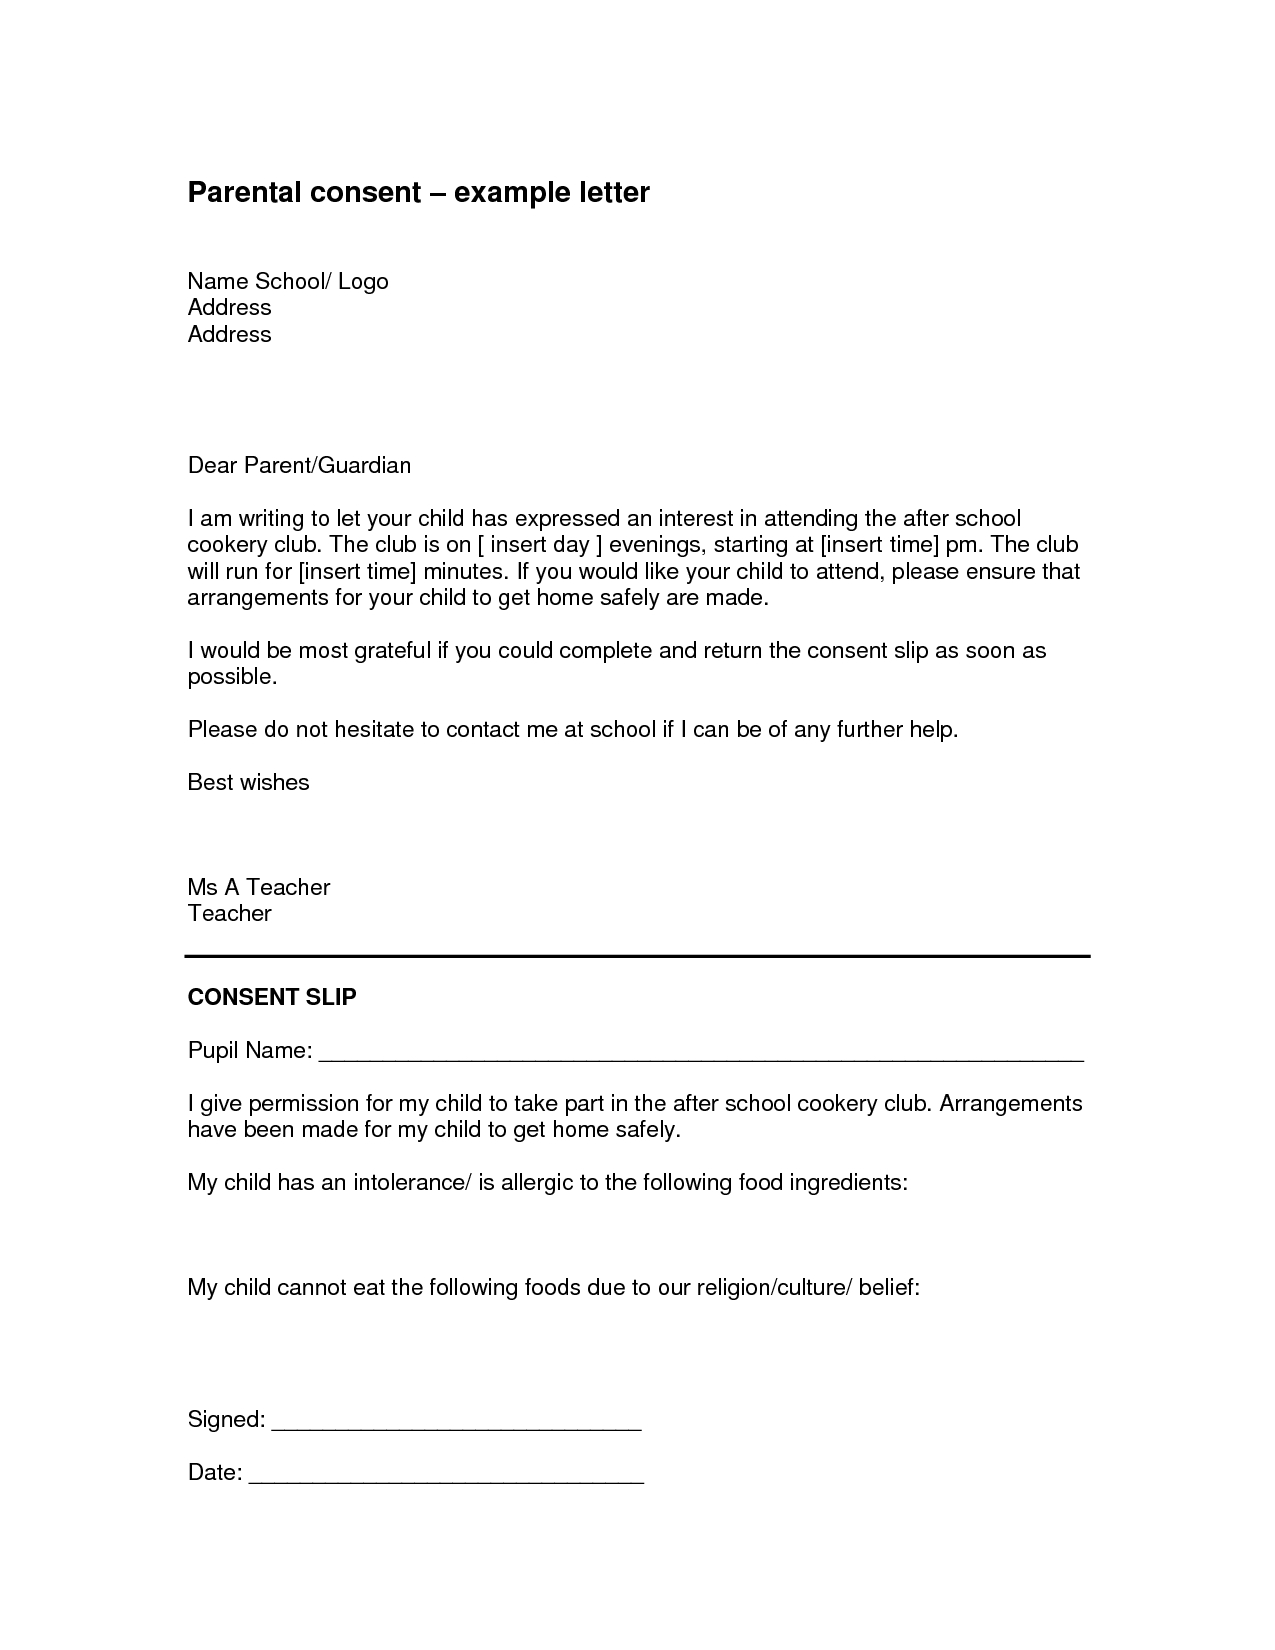 parental consent letter template example-Parental Authorization Letter For example children travelling alone with groups or with only one custodial parent should travel with a consent letter 4-t